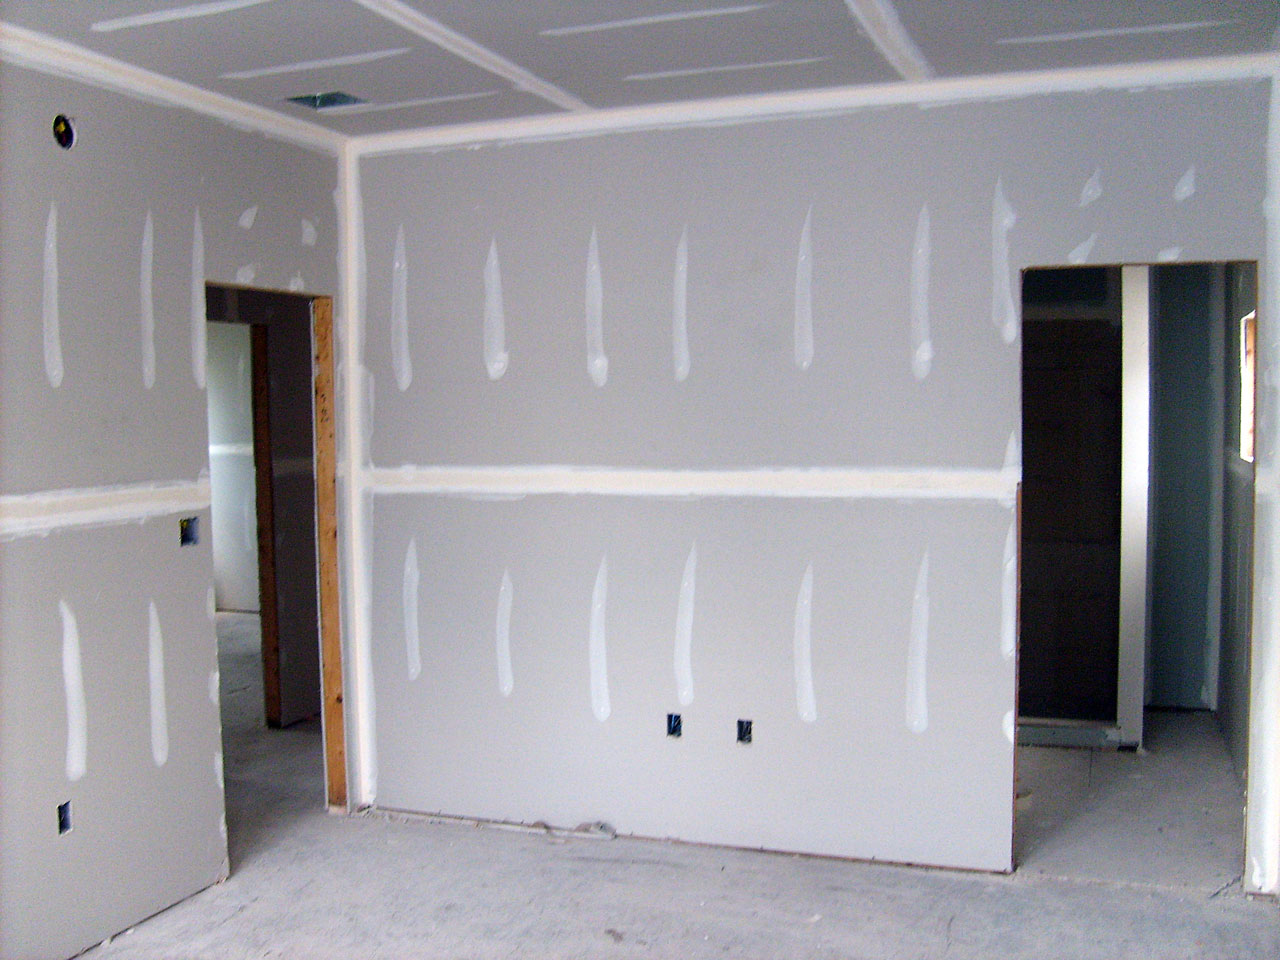 Gratis Drywall Cost To Install Drywall In A Single Room - Estimates And